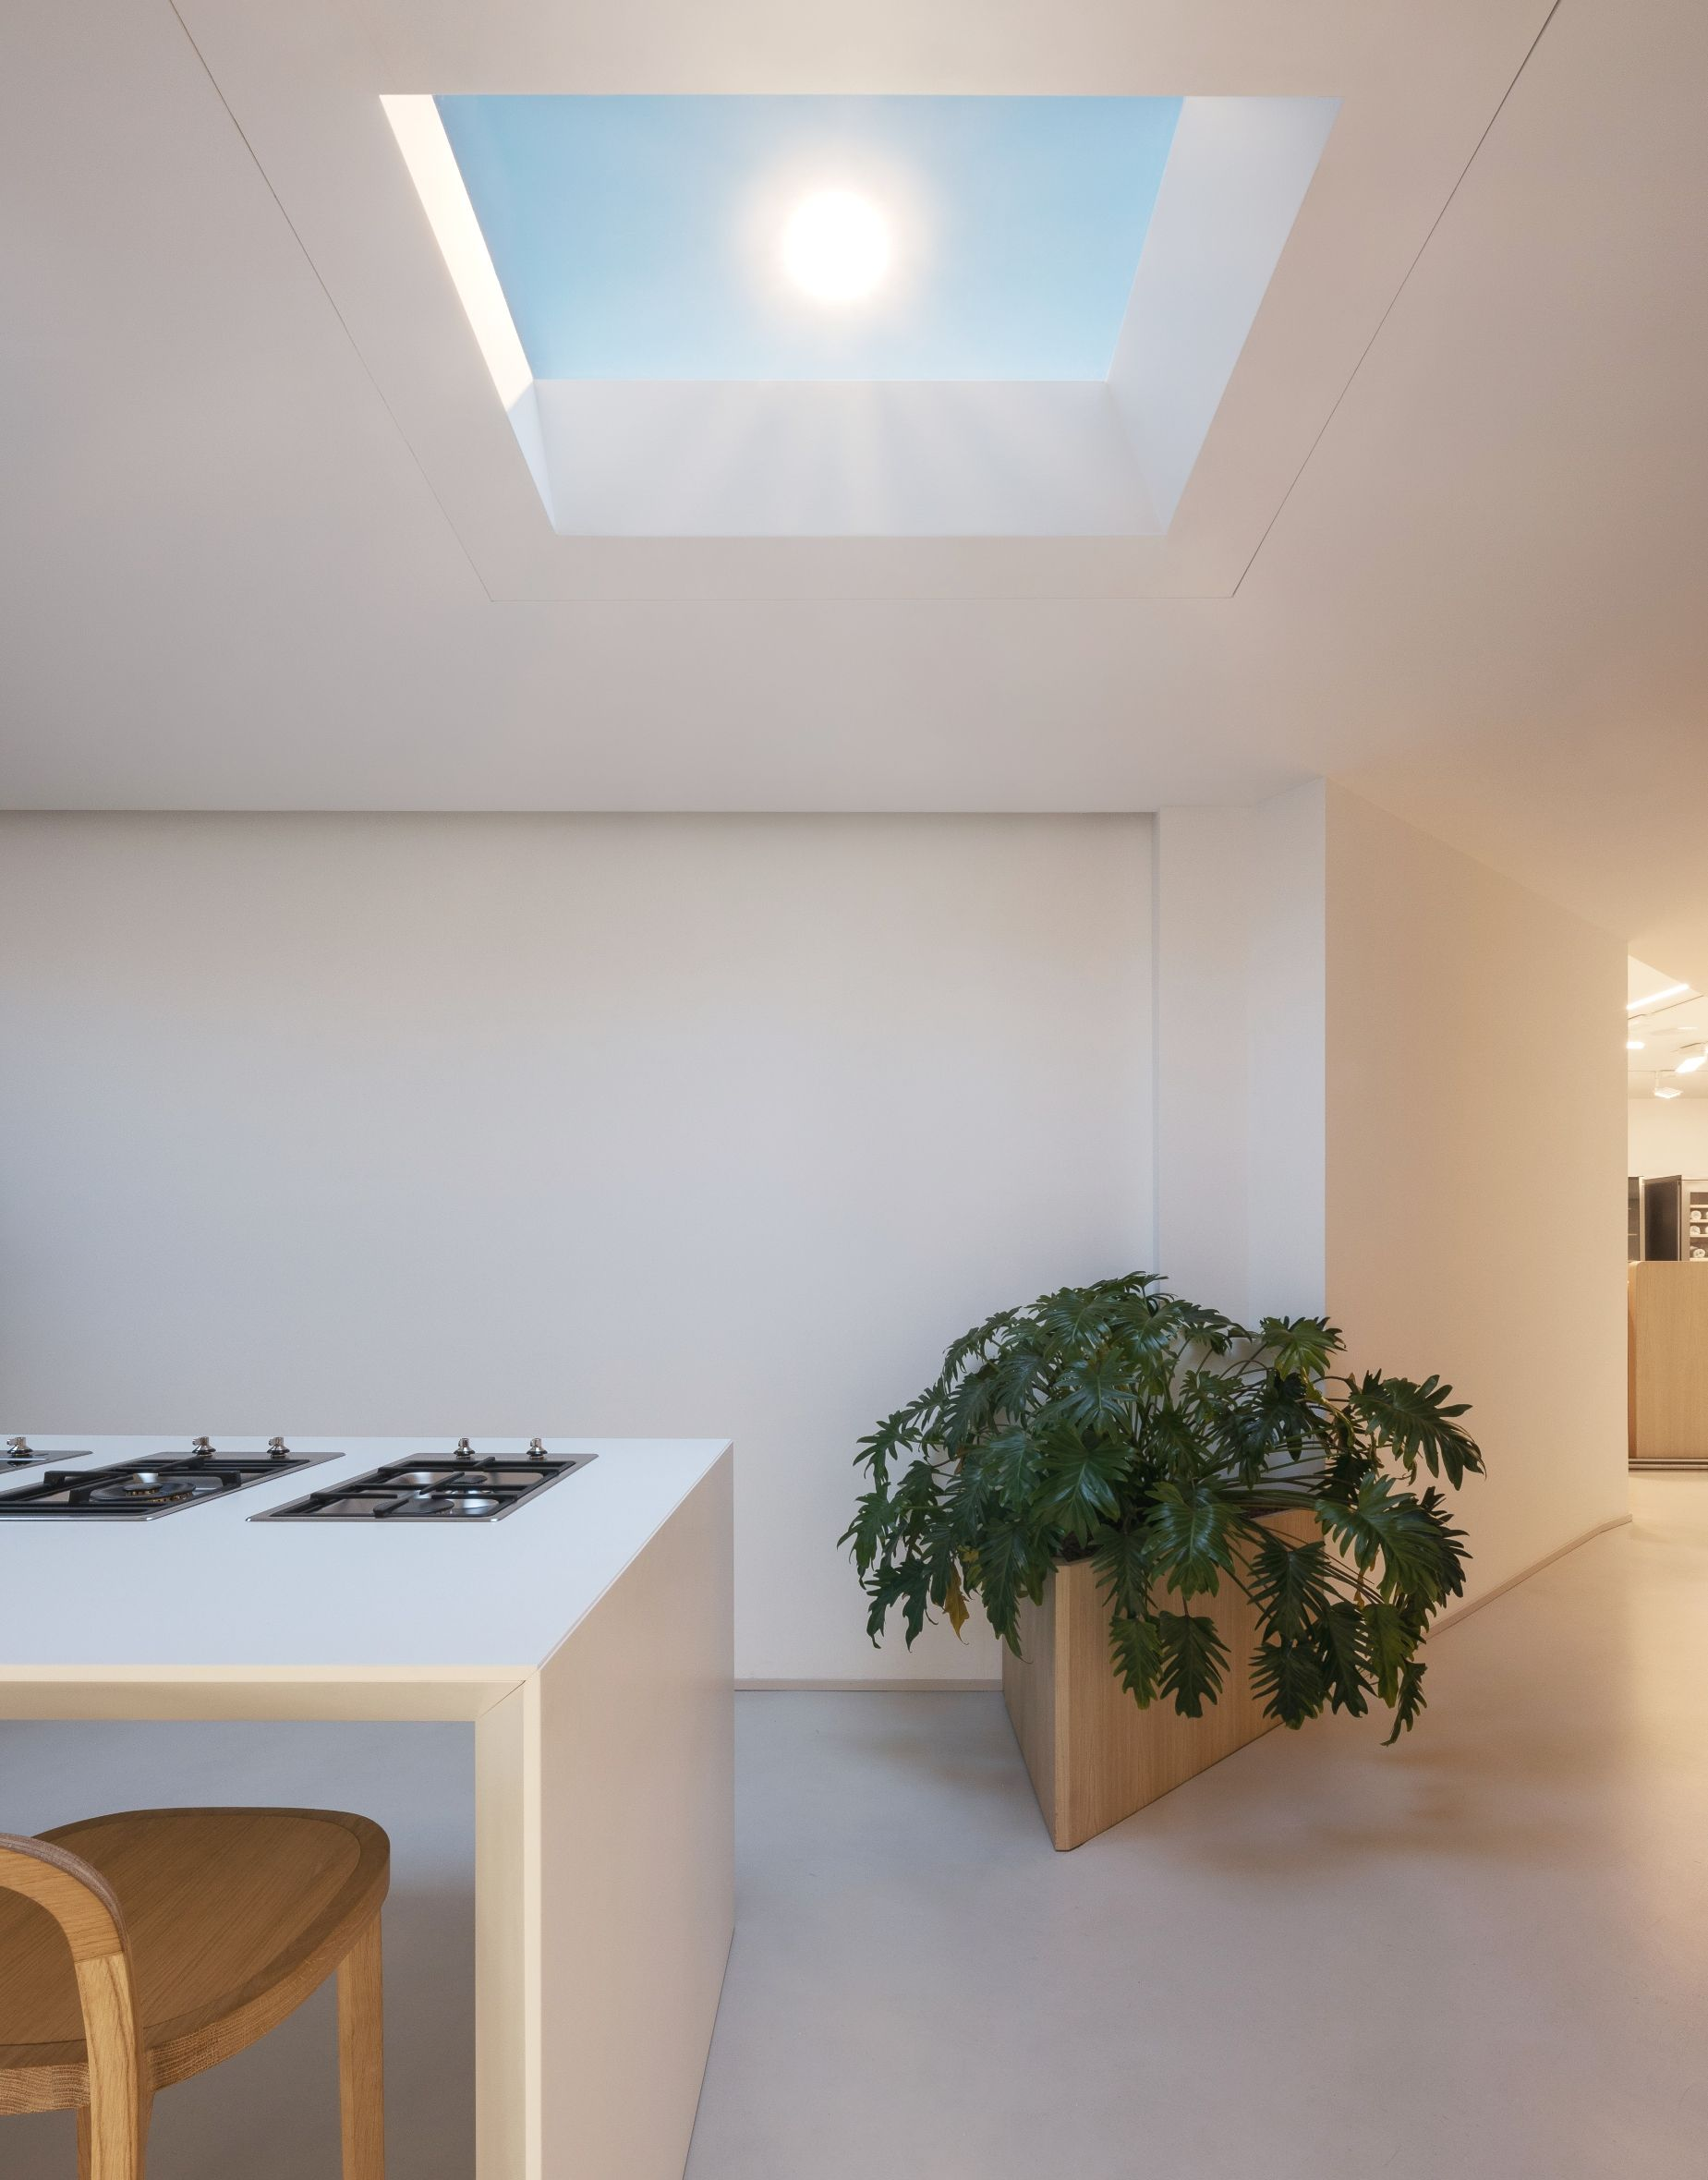 This Incredible Kitchen Has No Windows Or Natural Light Yet It S Sunny And Cheerful Using Lighting Technology That Natural Light Skylight Residential Design